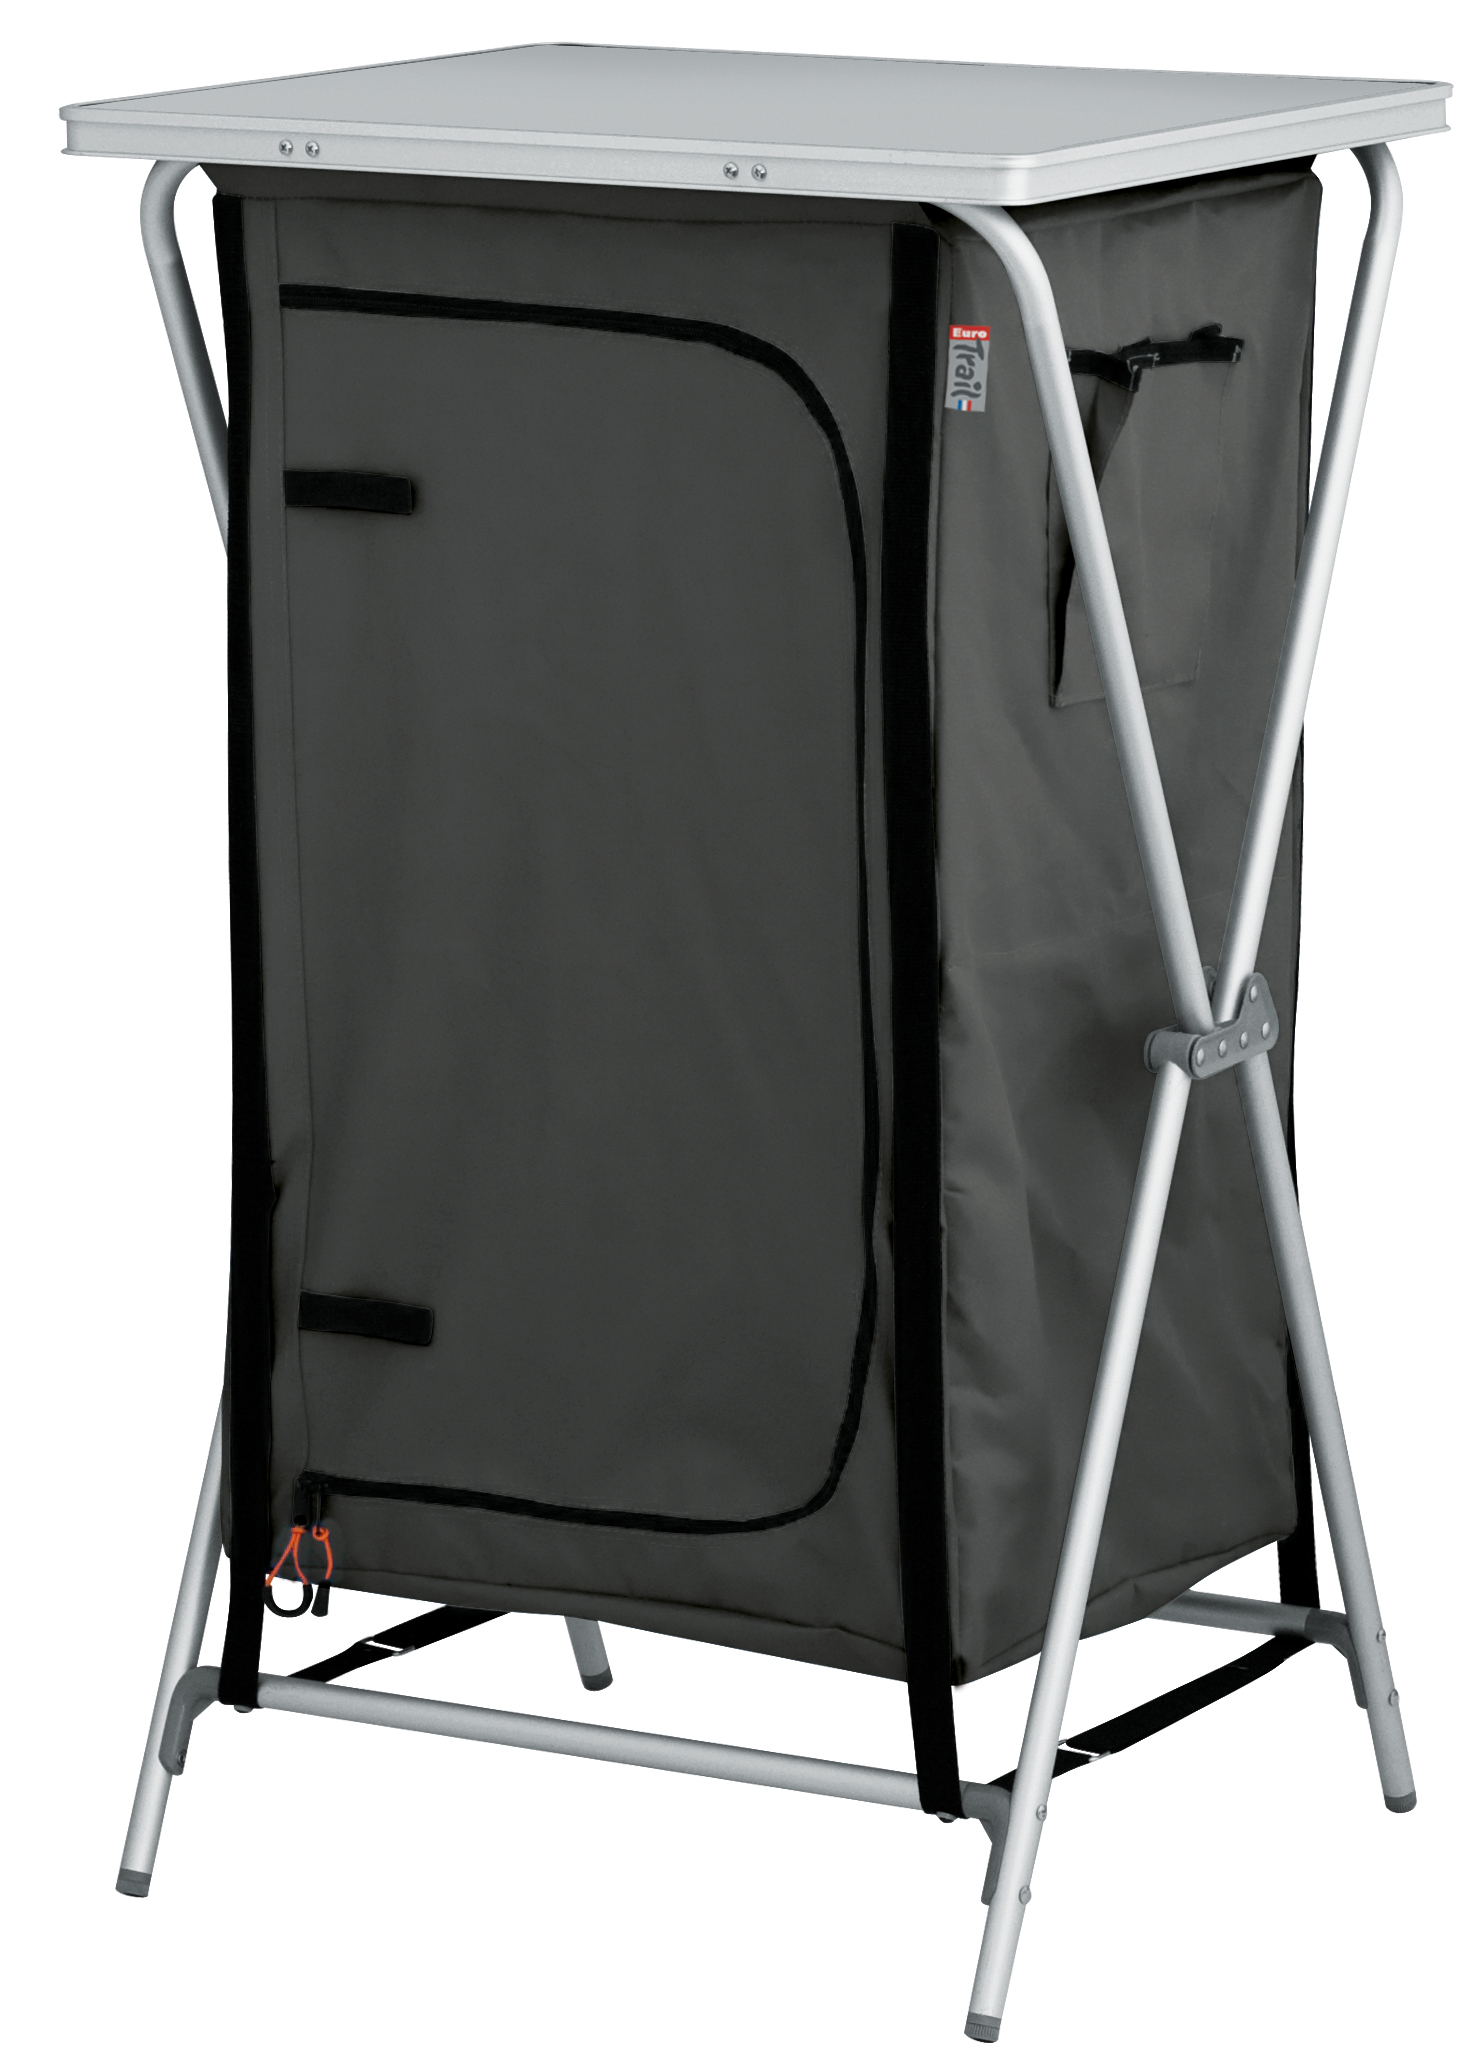 Euro trail cozumel camping armoire-lime